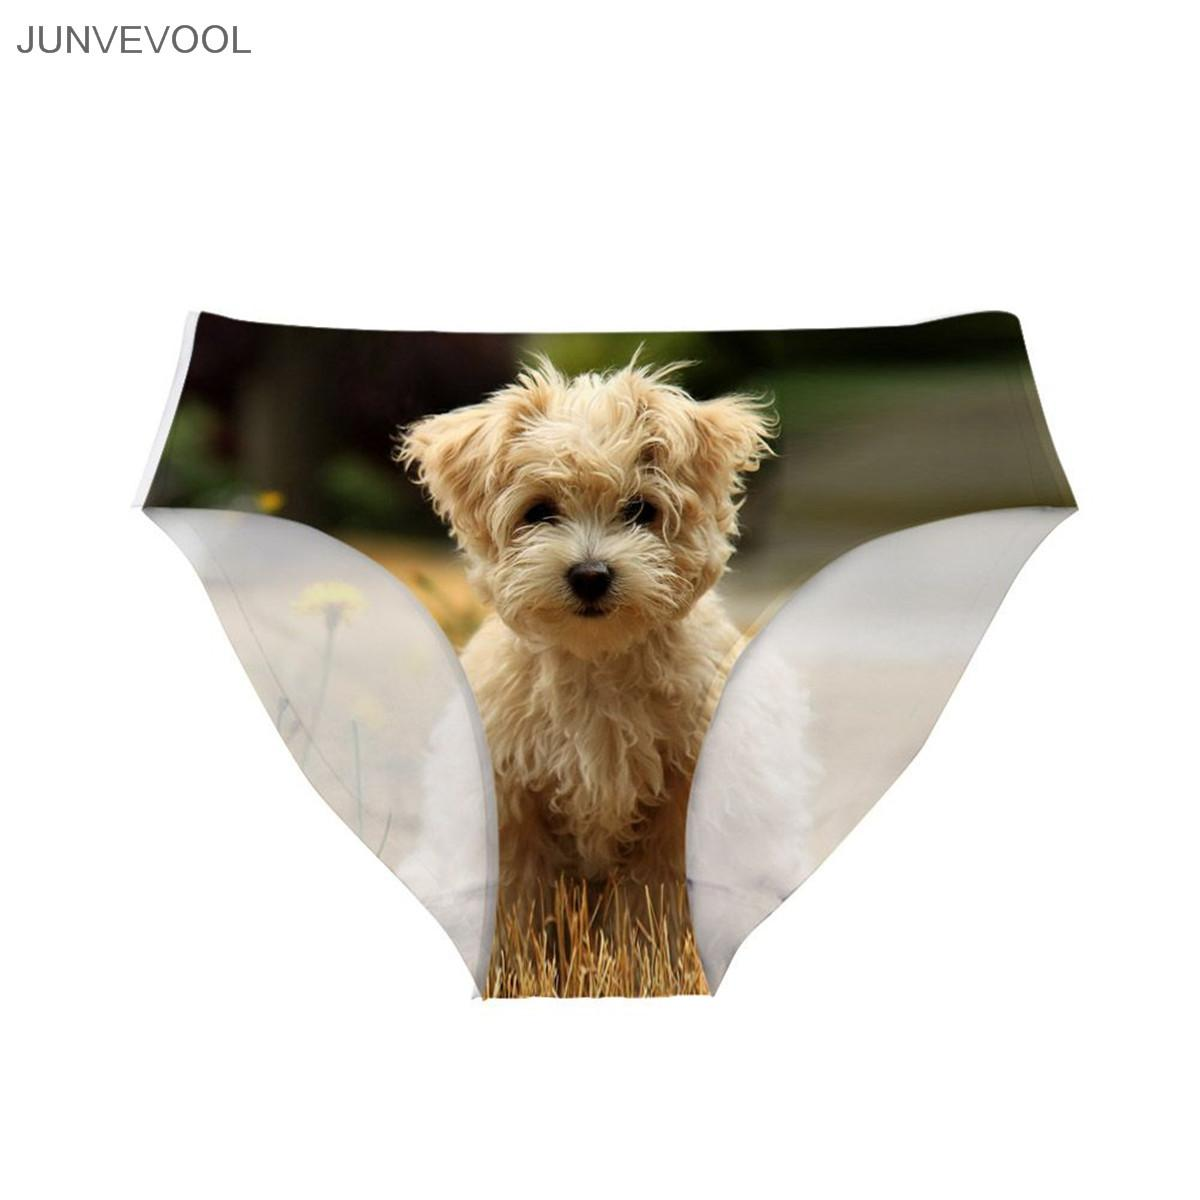 Womens Cotton Underpants Sexy Women Lady Underwear Briefs Panties G-string 3D Tattoo Thongs Lingerie Cute Smile Dog Print Animal